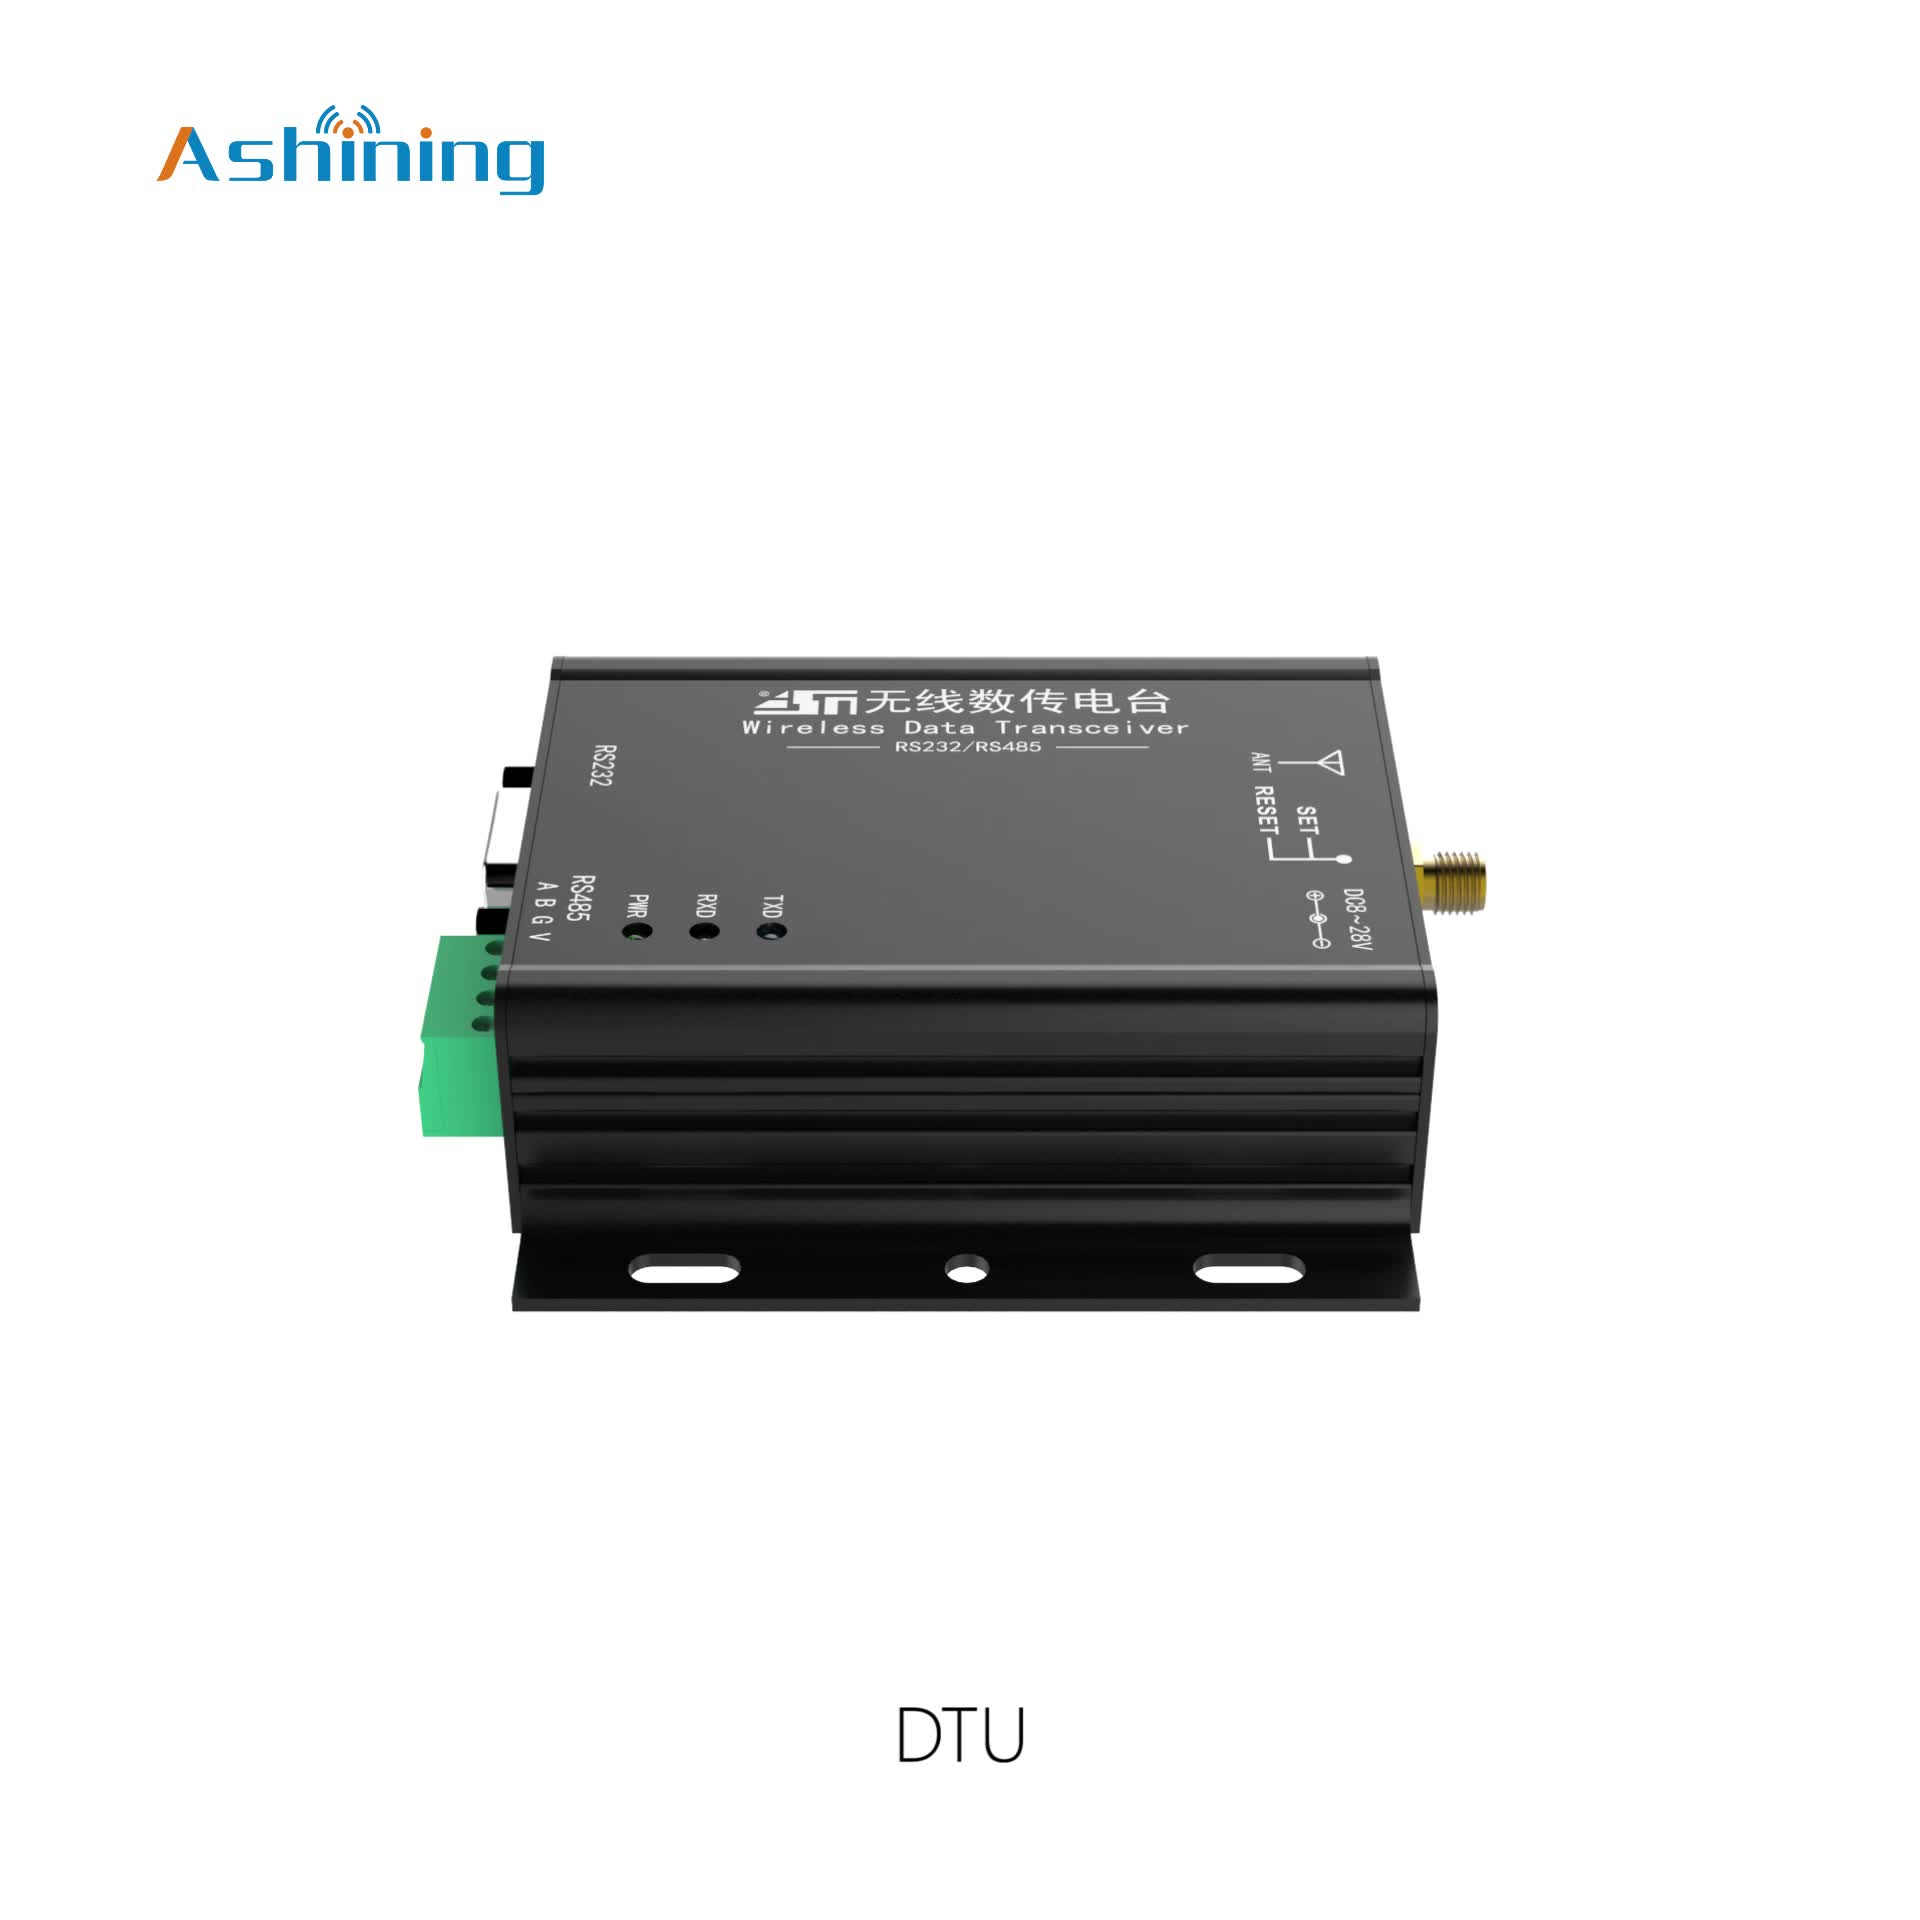 Hot Ashining AS69-dtu20 RS232 RS485 frequency hopping DTU data transfer unit wireless transceiver